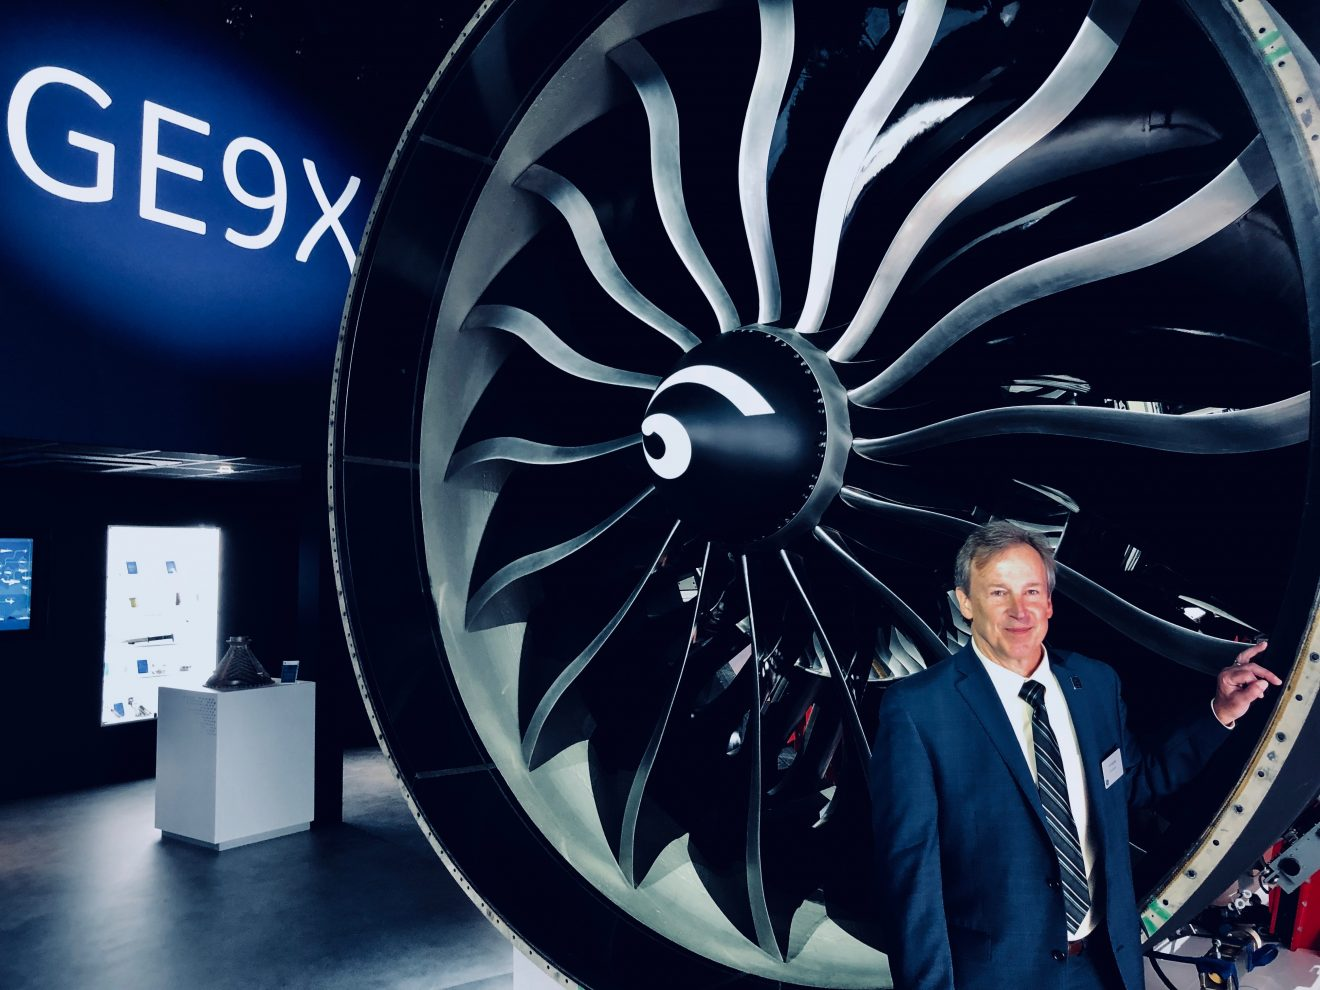 Image credit: Alex Schroff for GE Reports. Ted Ingling, the general manager for the GE9X engine program, unveiled the GE9X jet engine at the Paris Air Show on Monday. Image credit: Tomas Kellner for GE Reports.